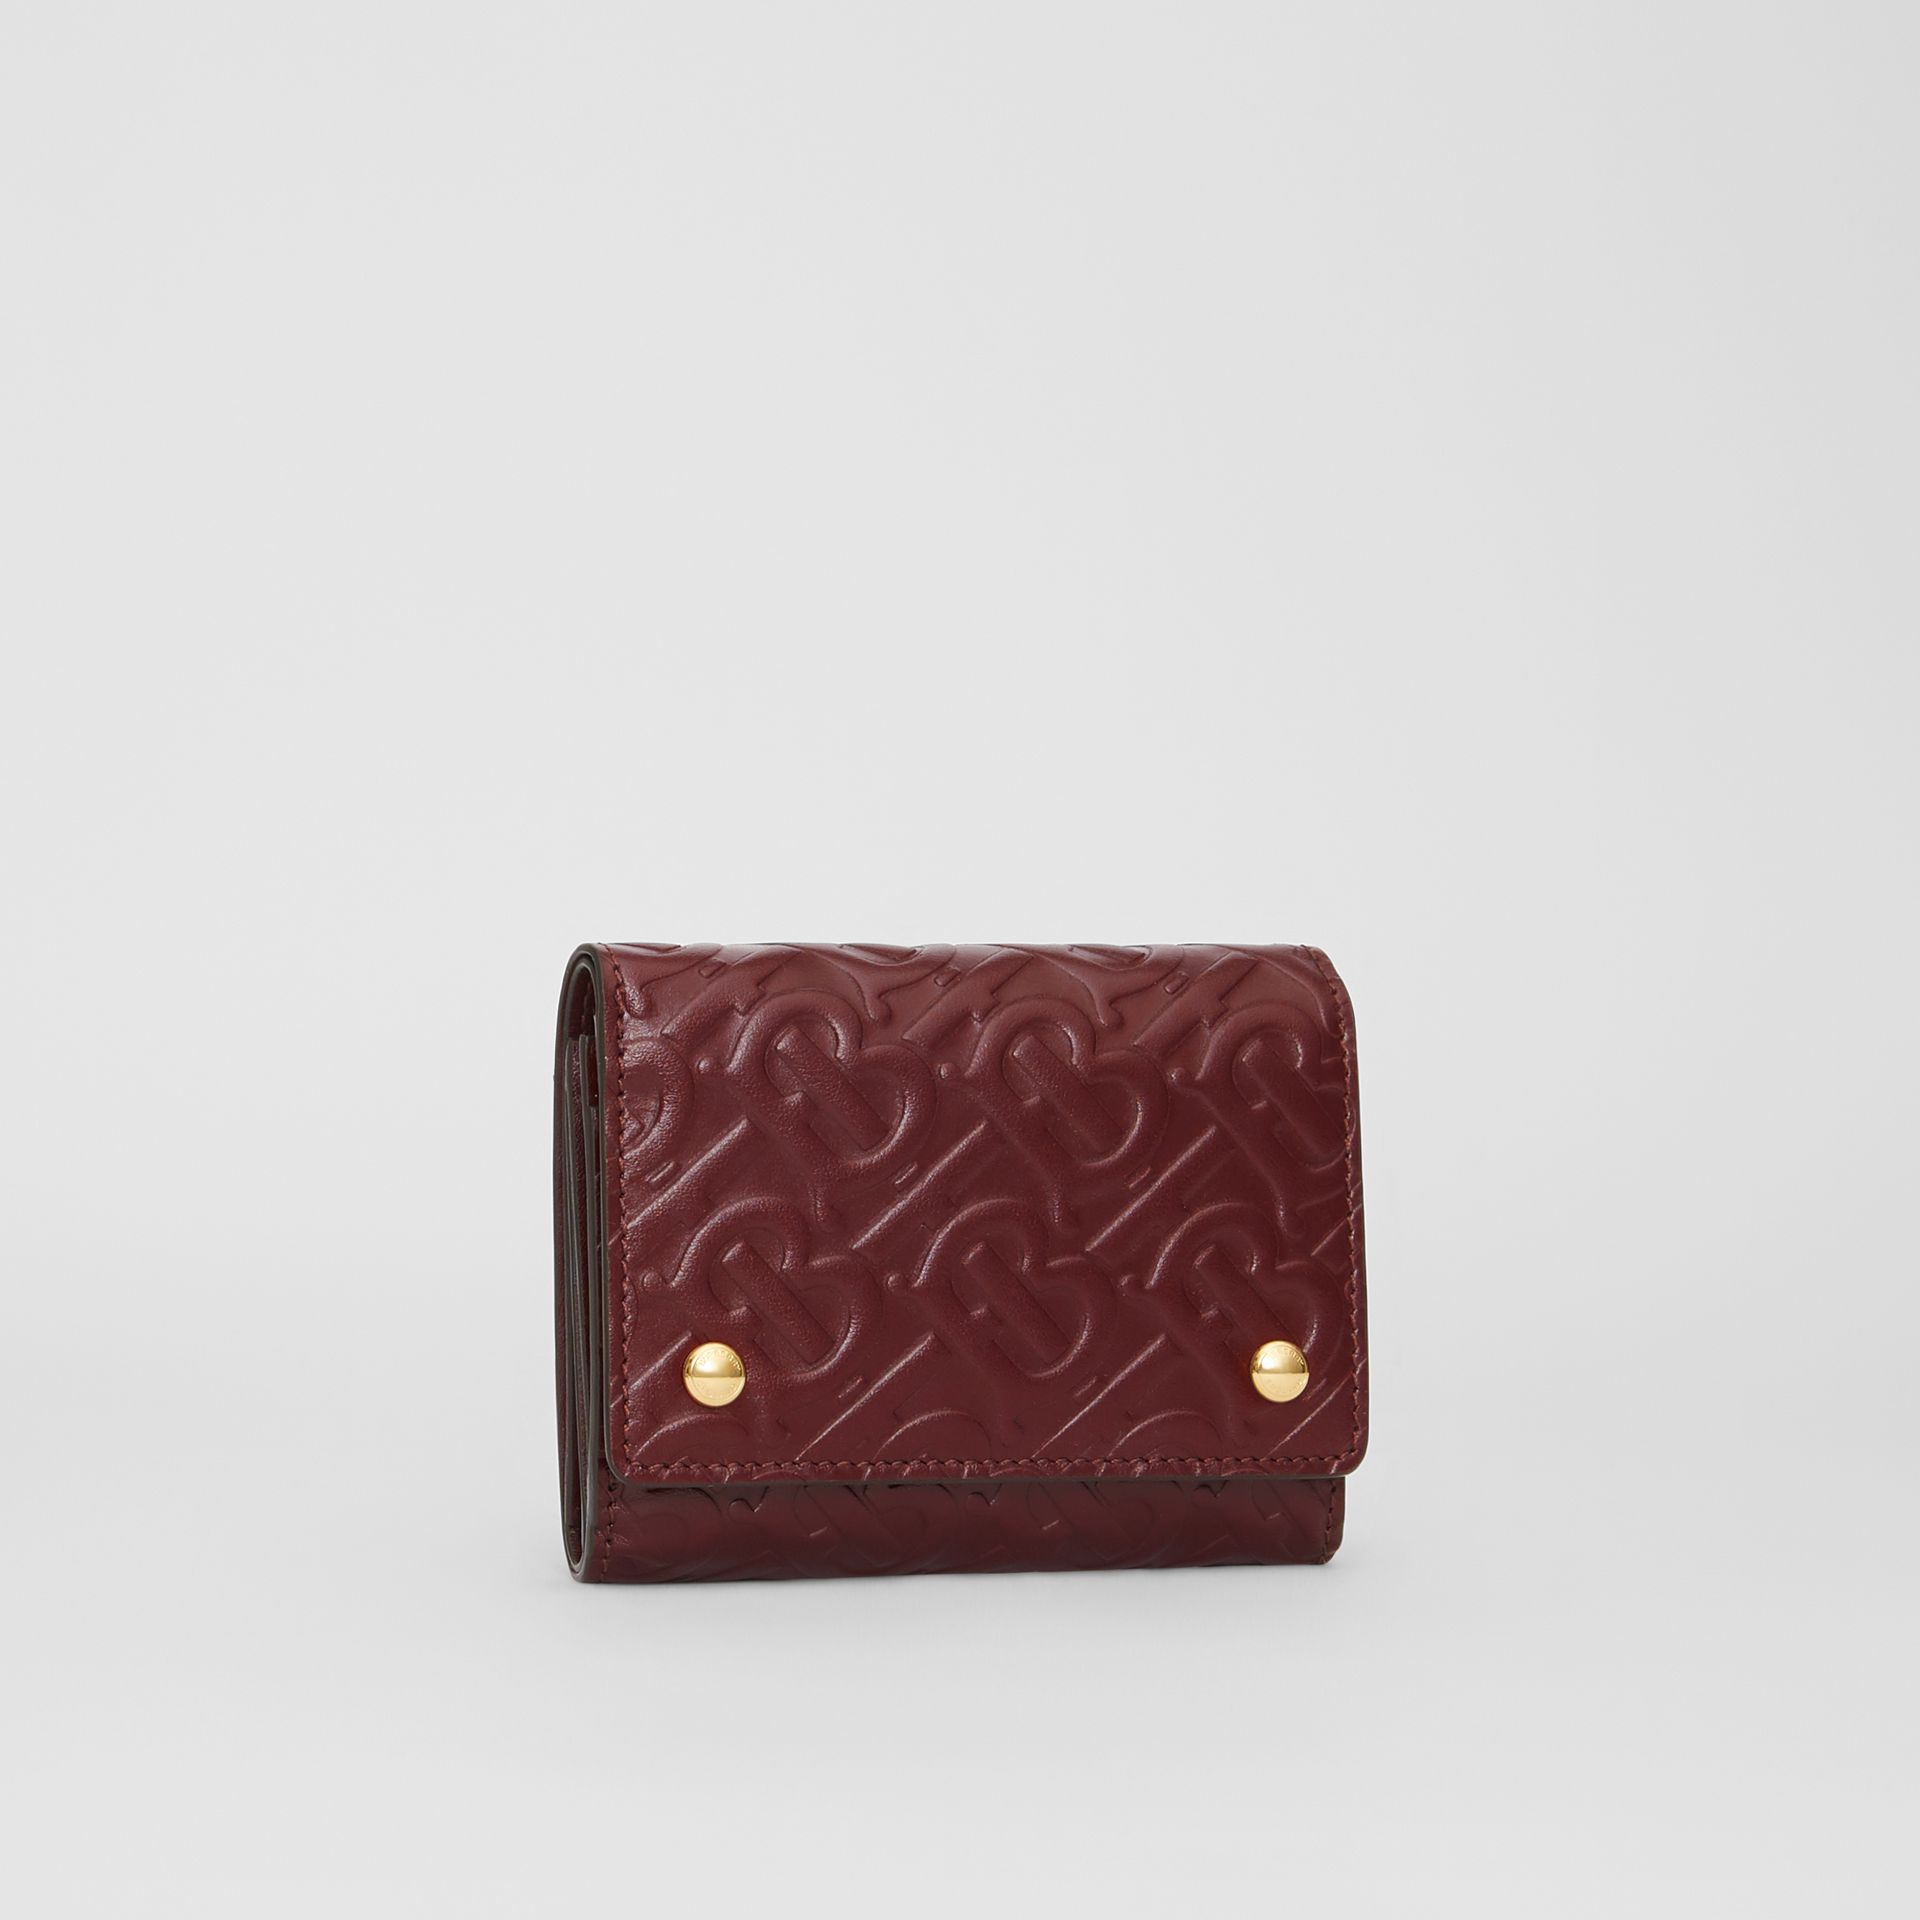 Small Monogram Leather Folding Wallet in Oxblood - Women | Burberry - gallery image 3